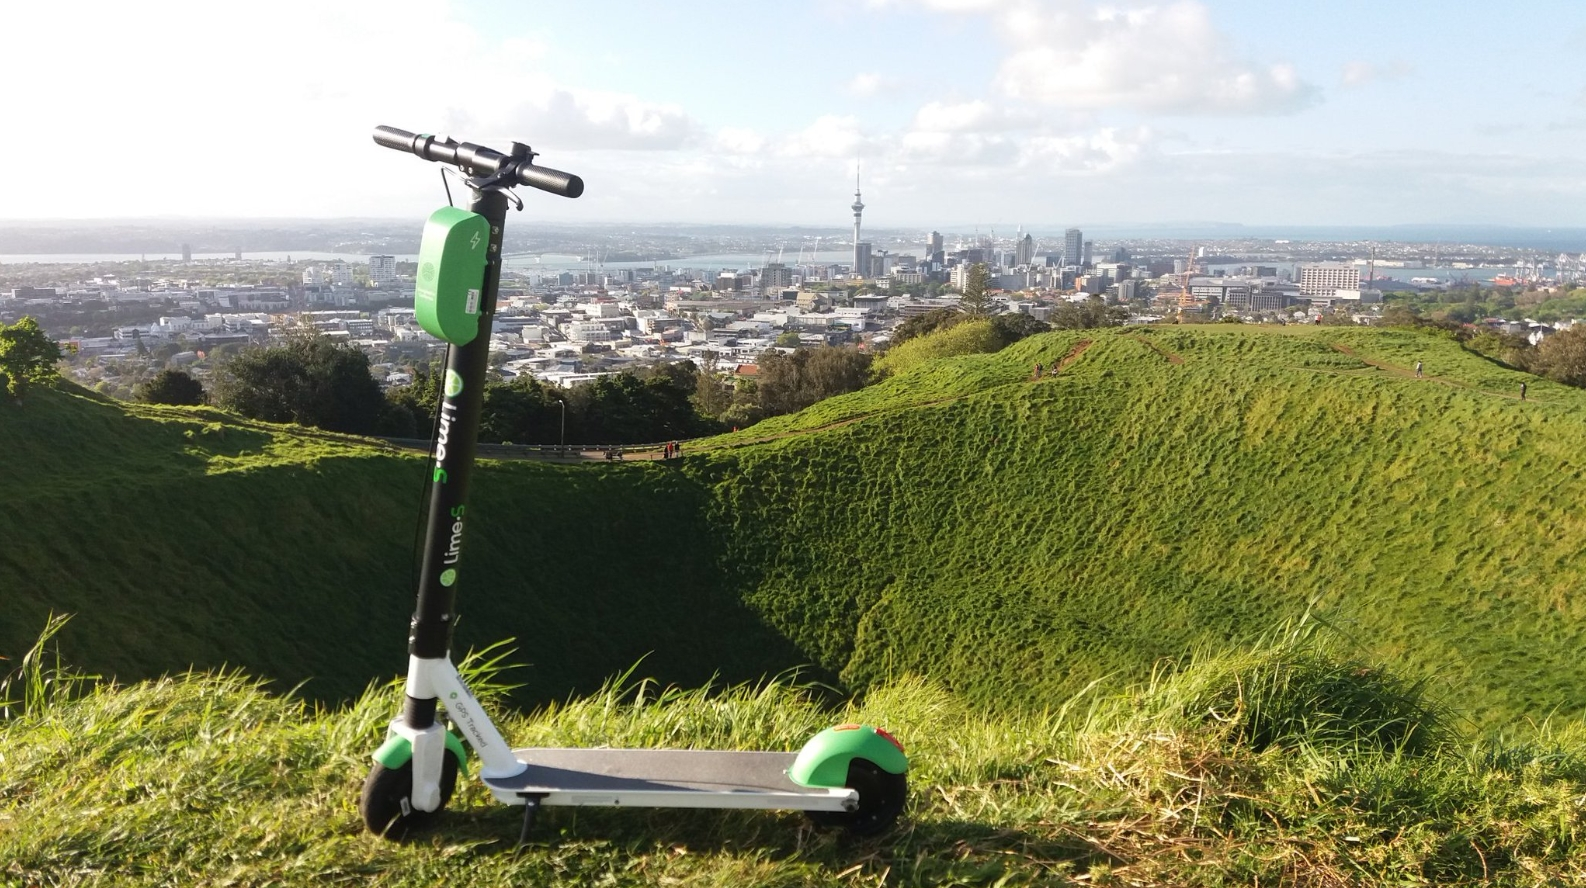 Lime Scooters banned (for now) - Greater Auckland